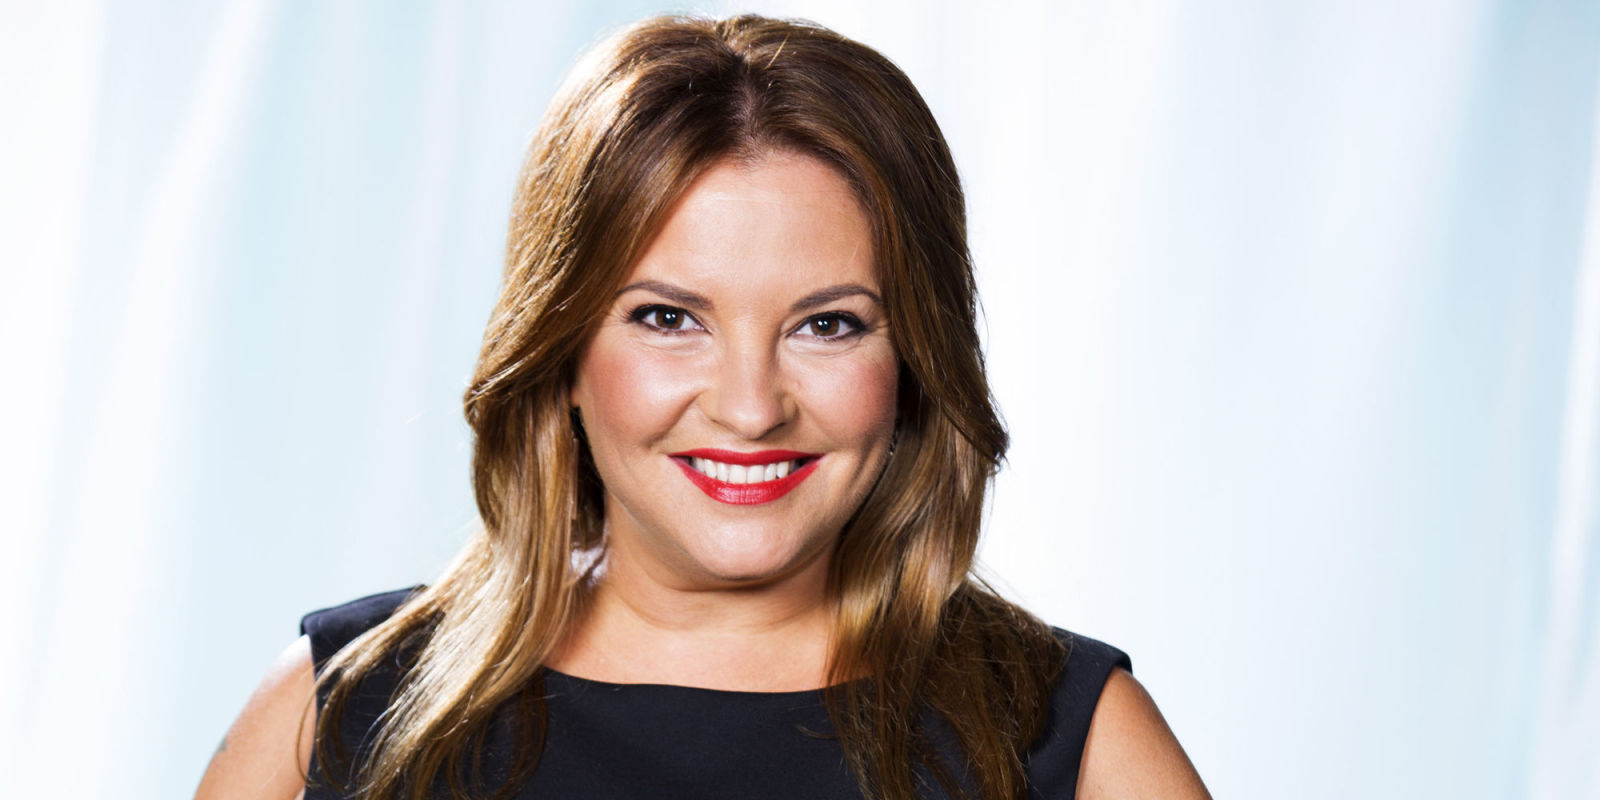 neighbours spoiler terese panics after the mysterious robbery